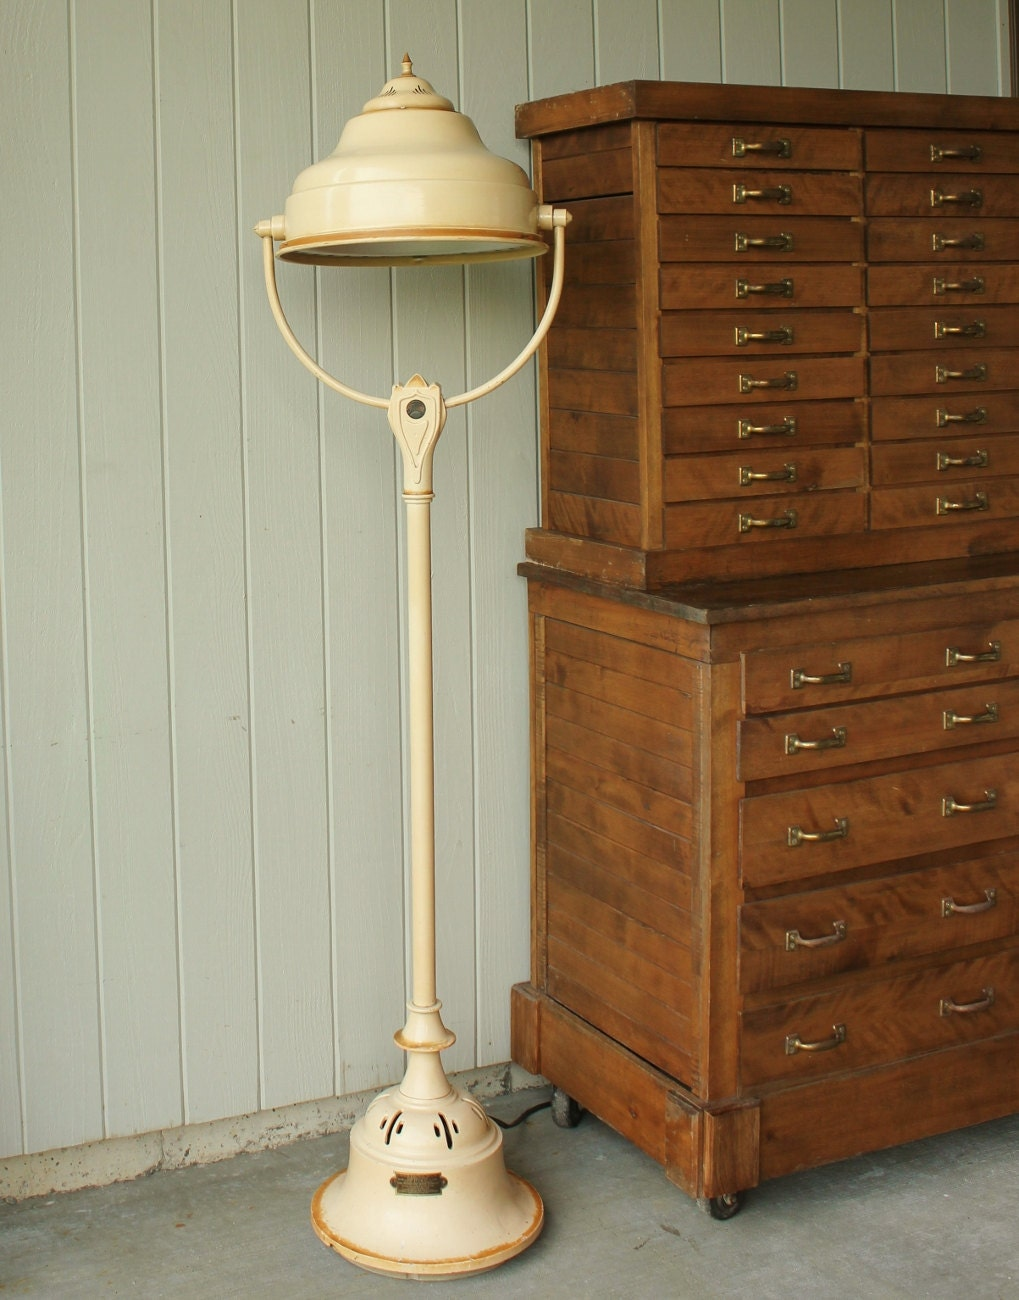 Antique Industrial Dominion Sunlamp Floor Lamp